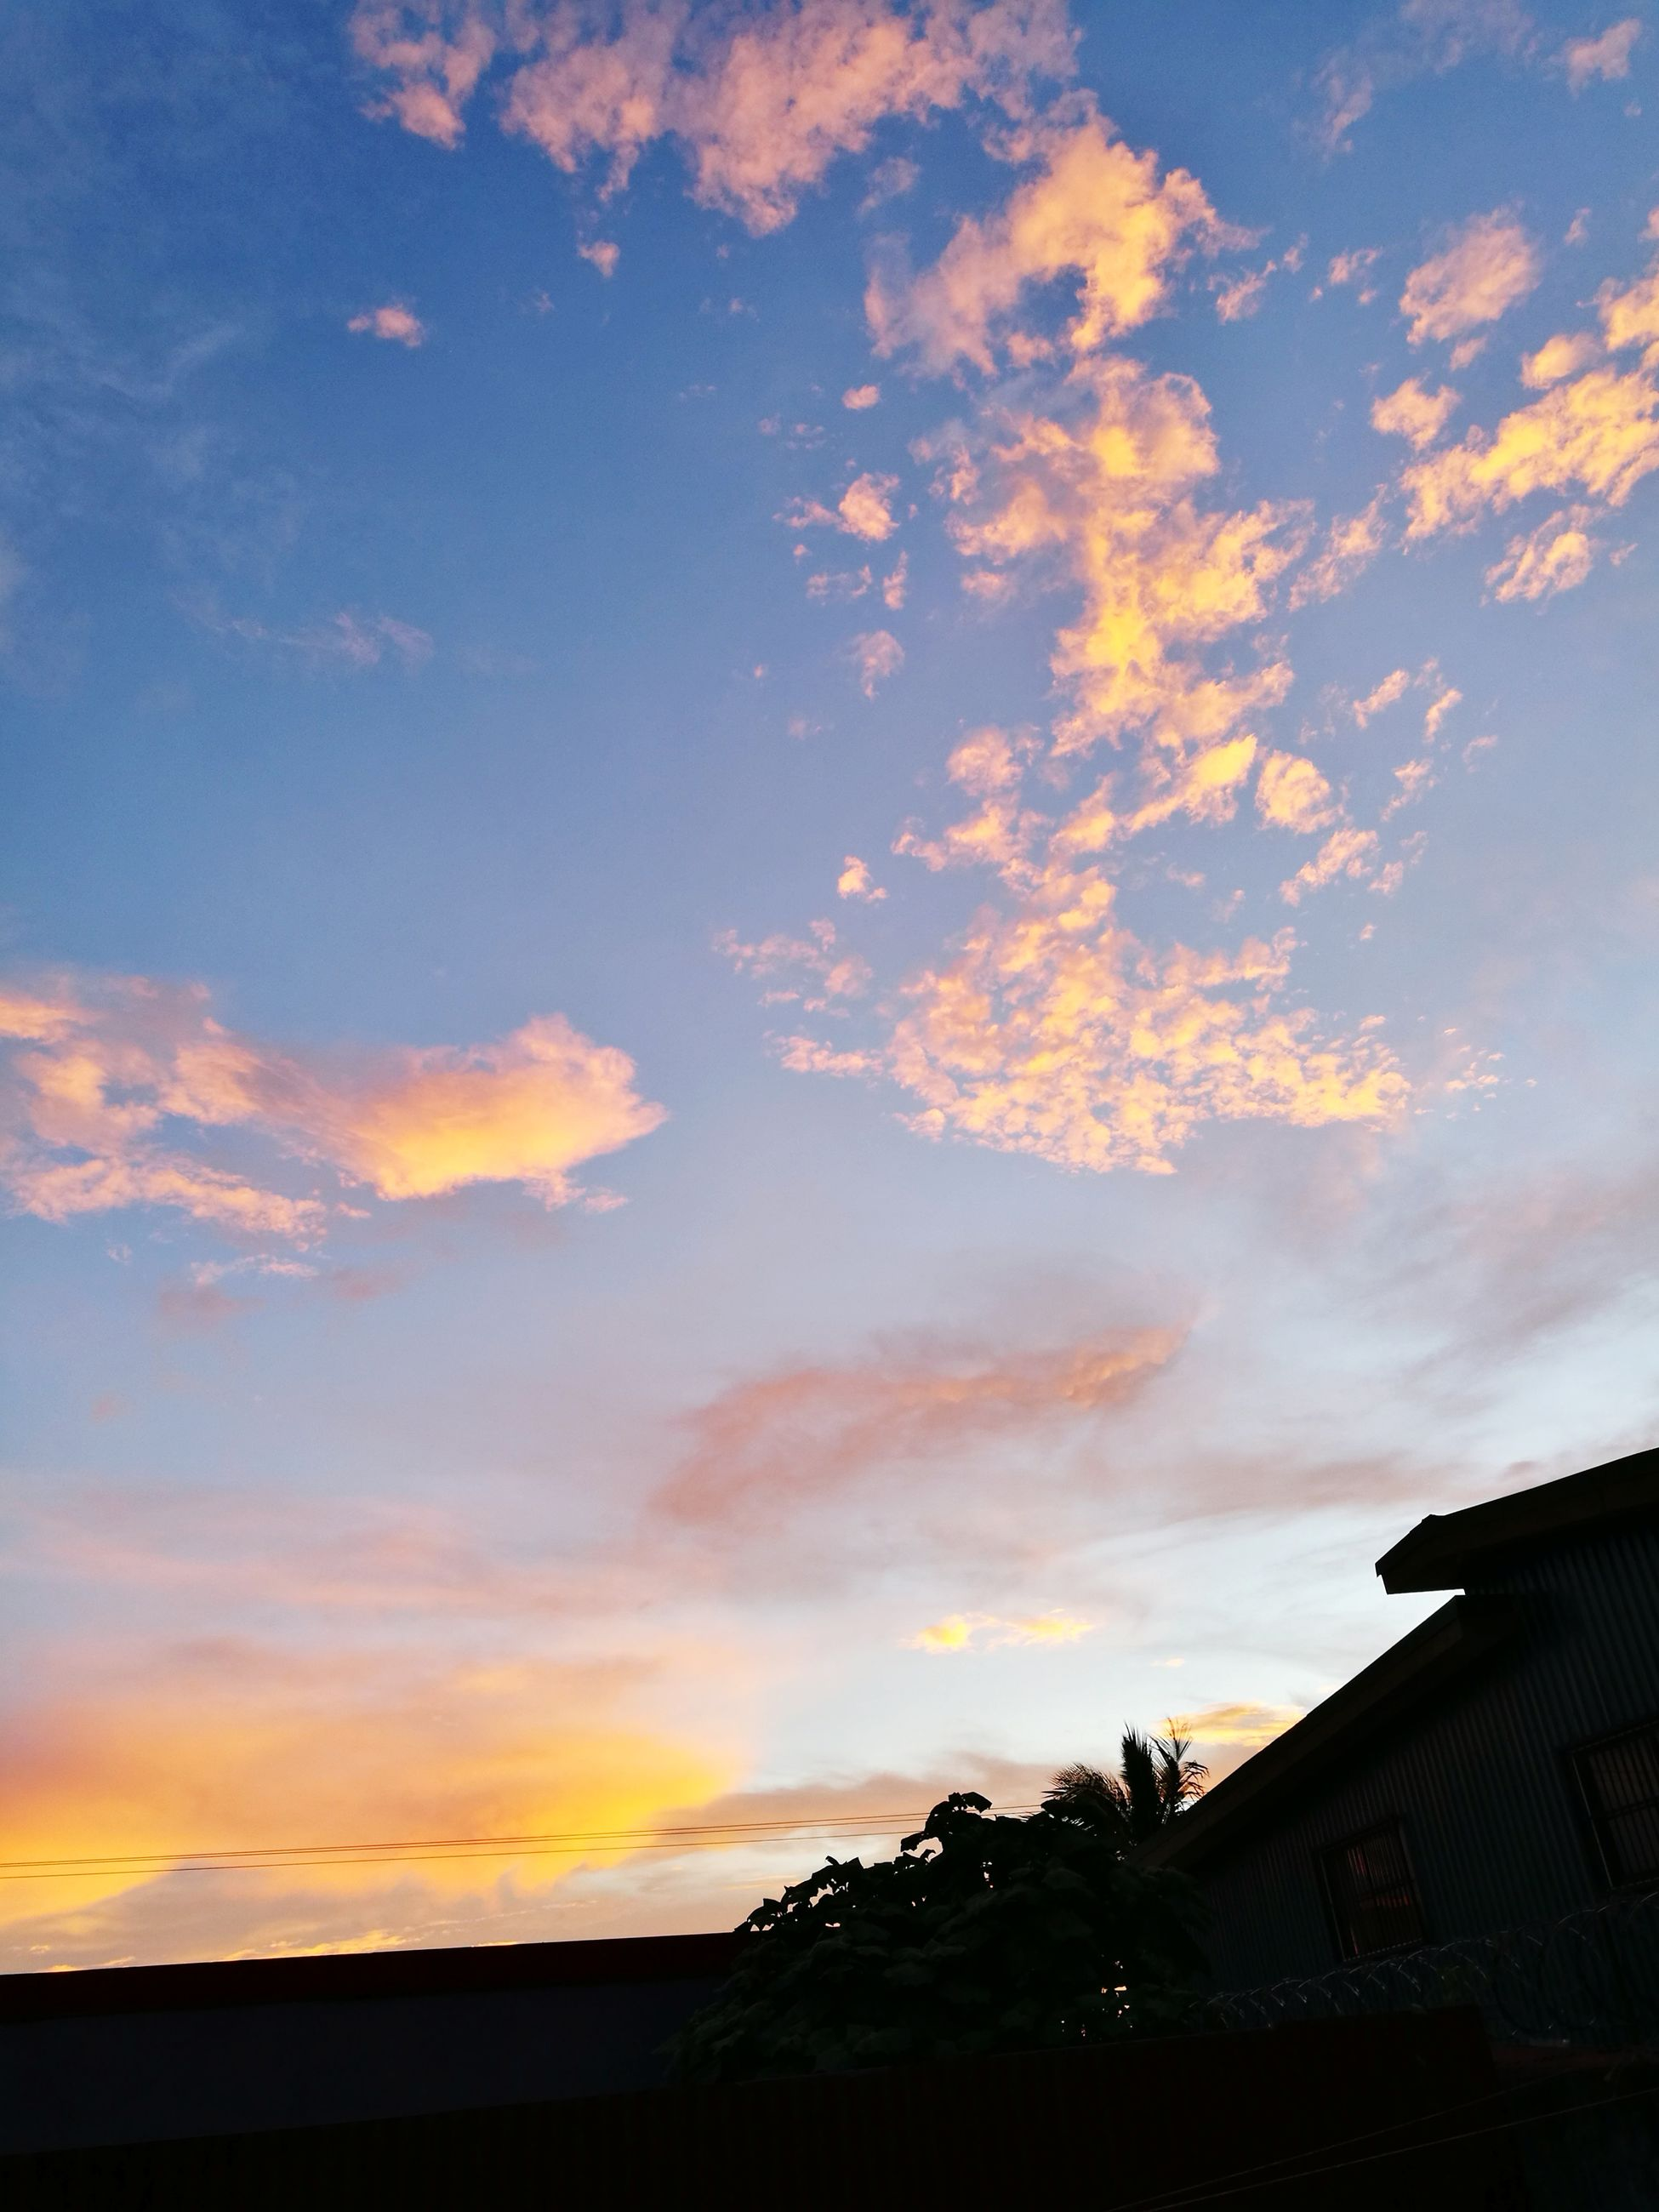 sky, built structure, architecture, house, building exterior, sunset, cloud - sky, silhouette, no people, low angle view, outdoors, nature, beauty in nature, scenics, tree, day